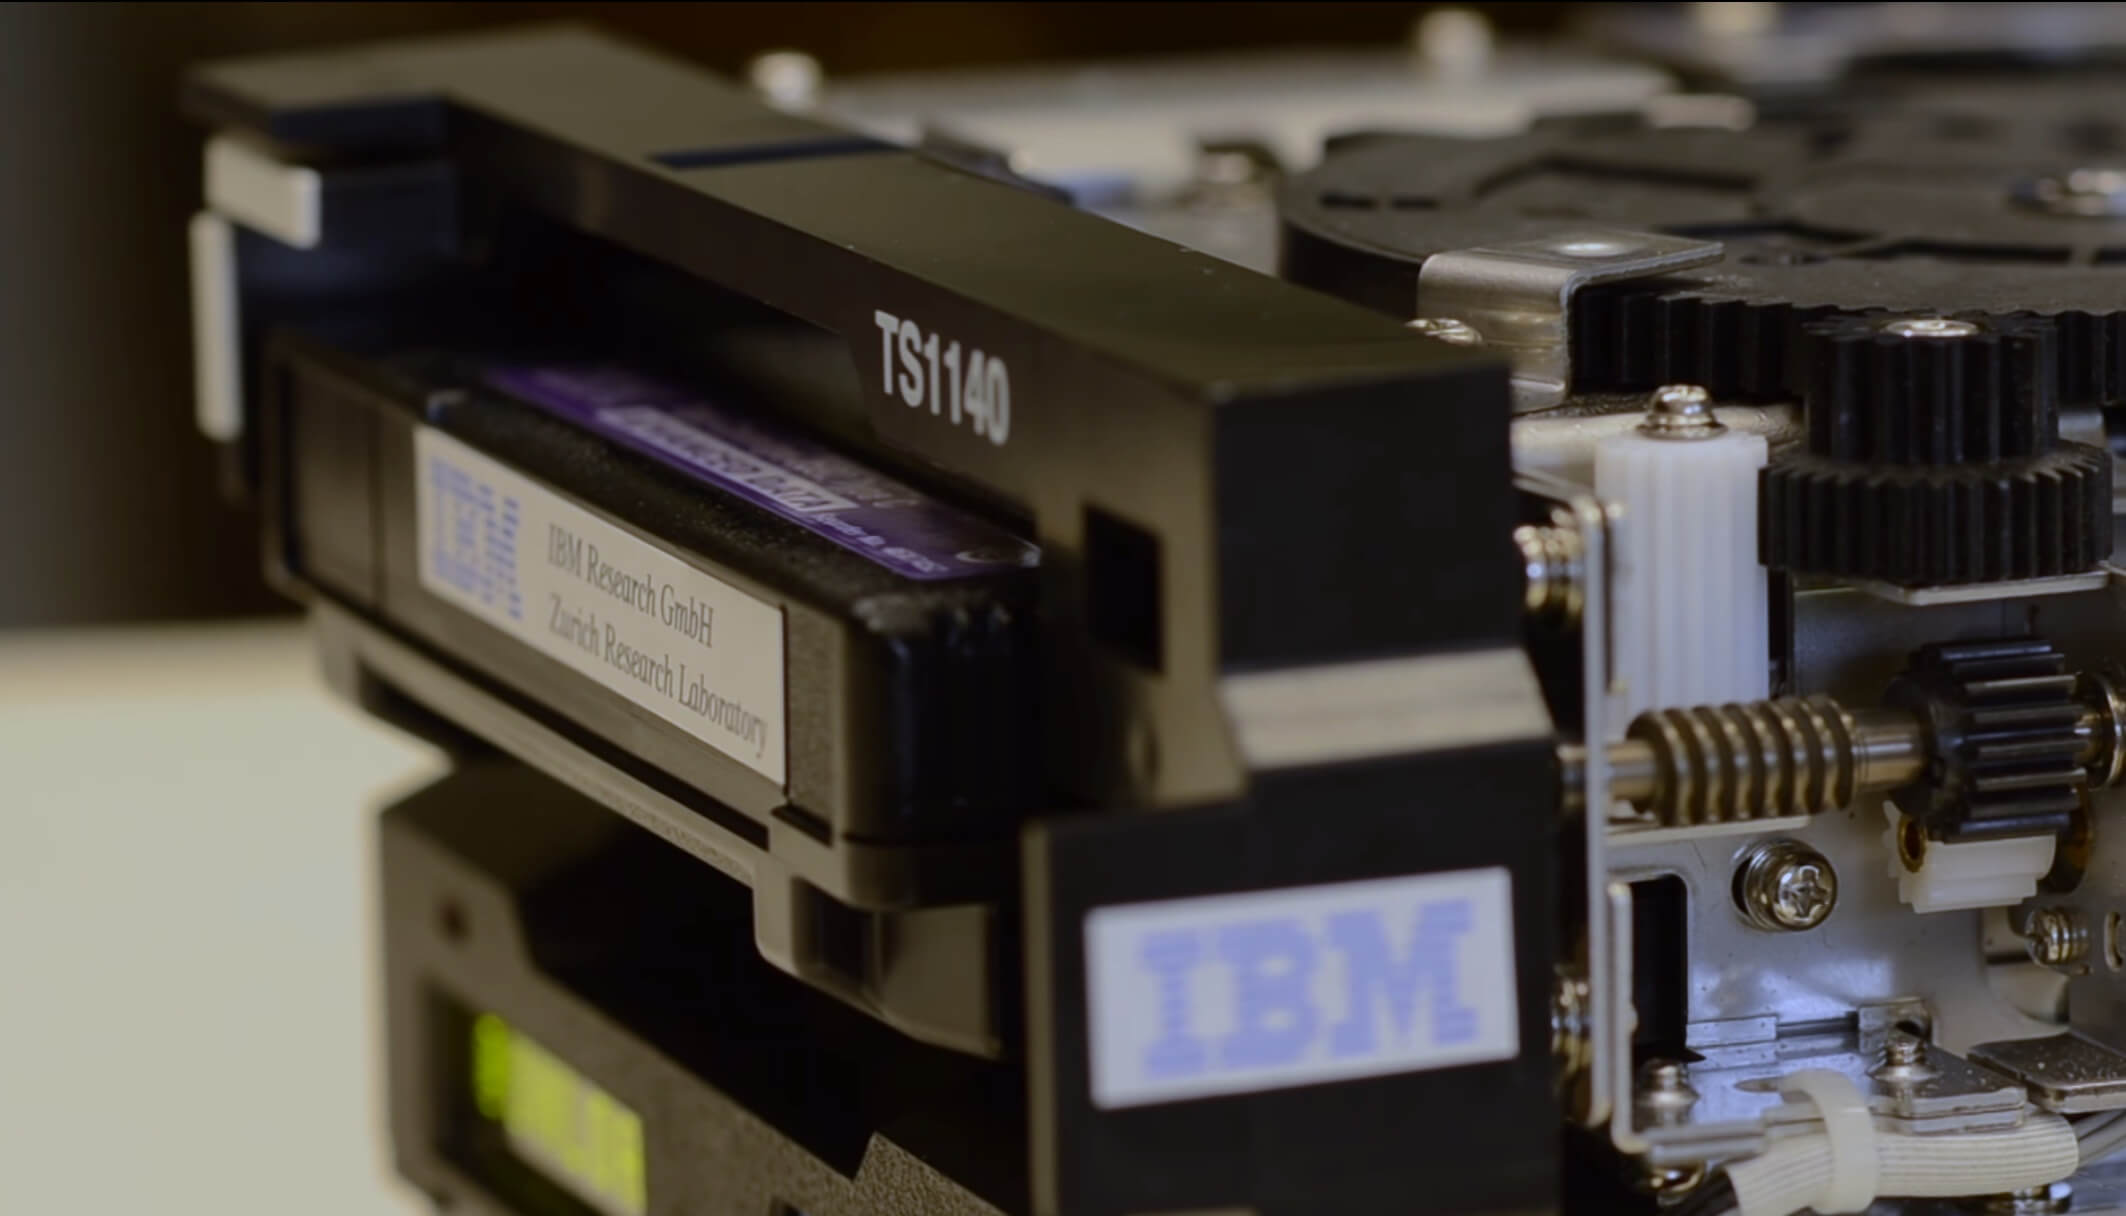 IBM breaks record by storing 330TB of uncompressed data onto palm-sized cartridge